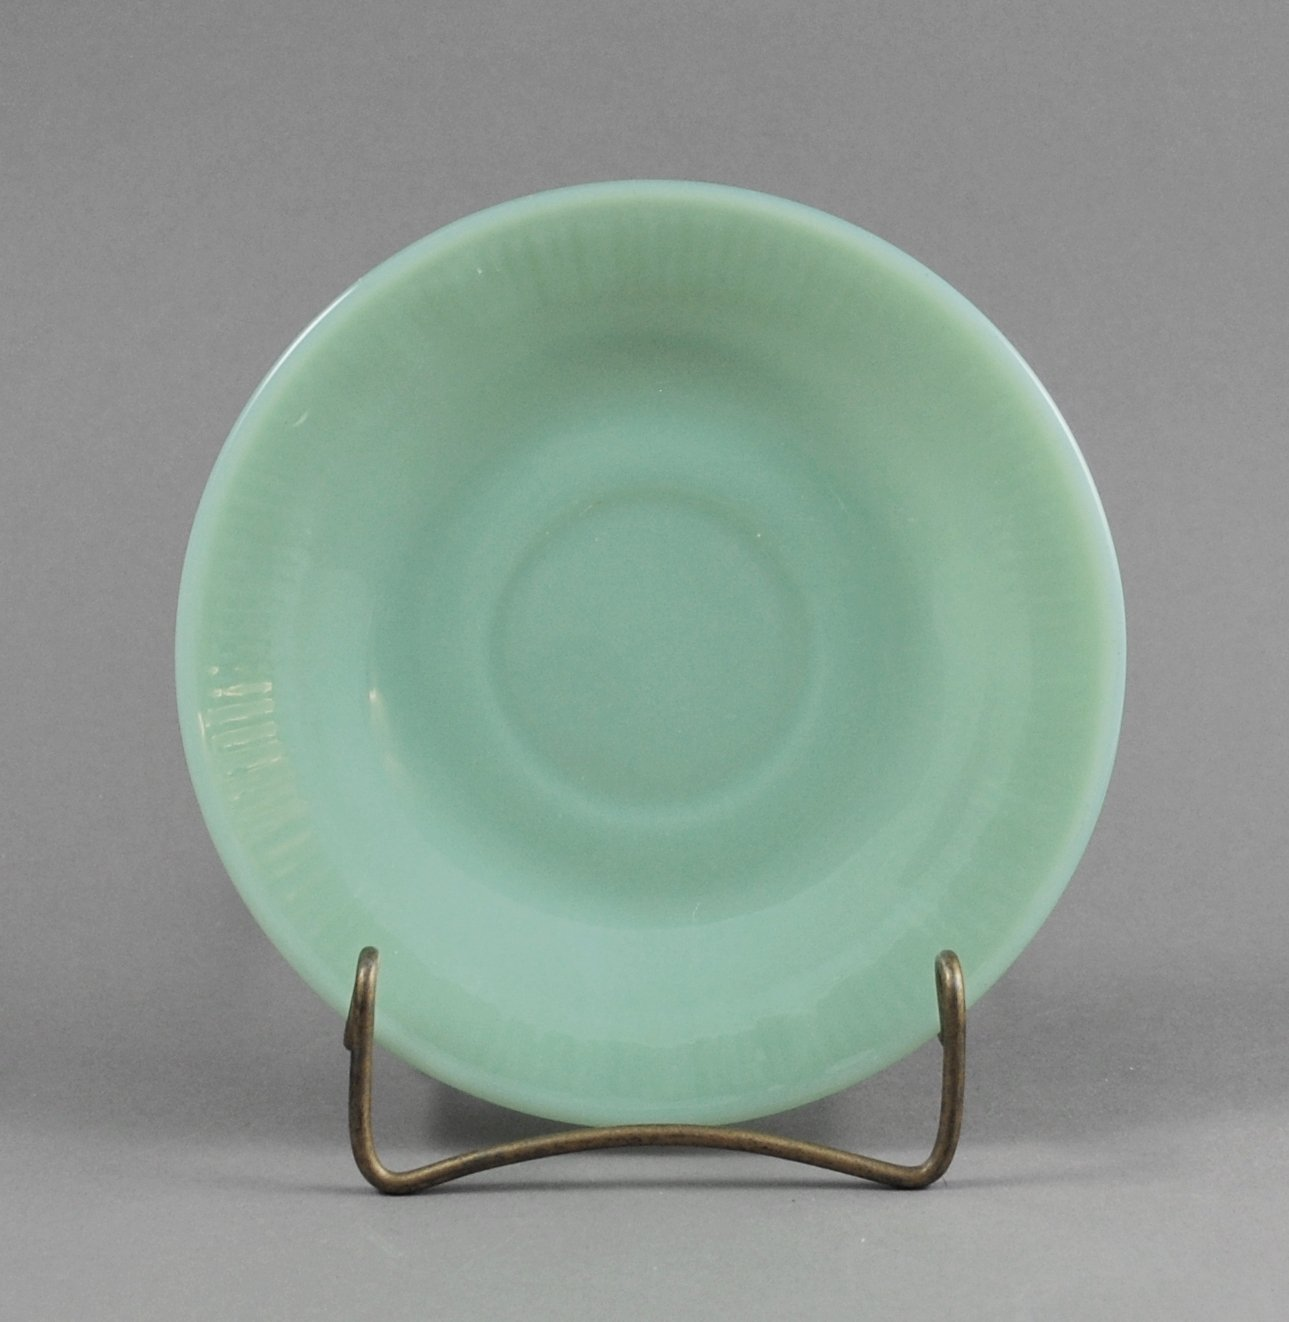 Anchor Hocking Jade-ite Fire King Green Jane Ray Saucer